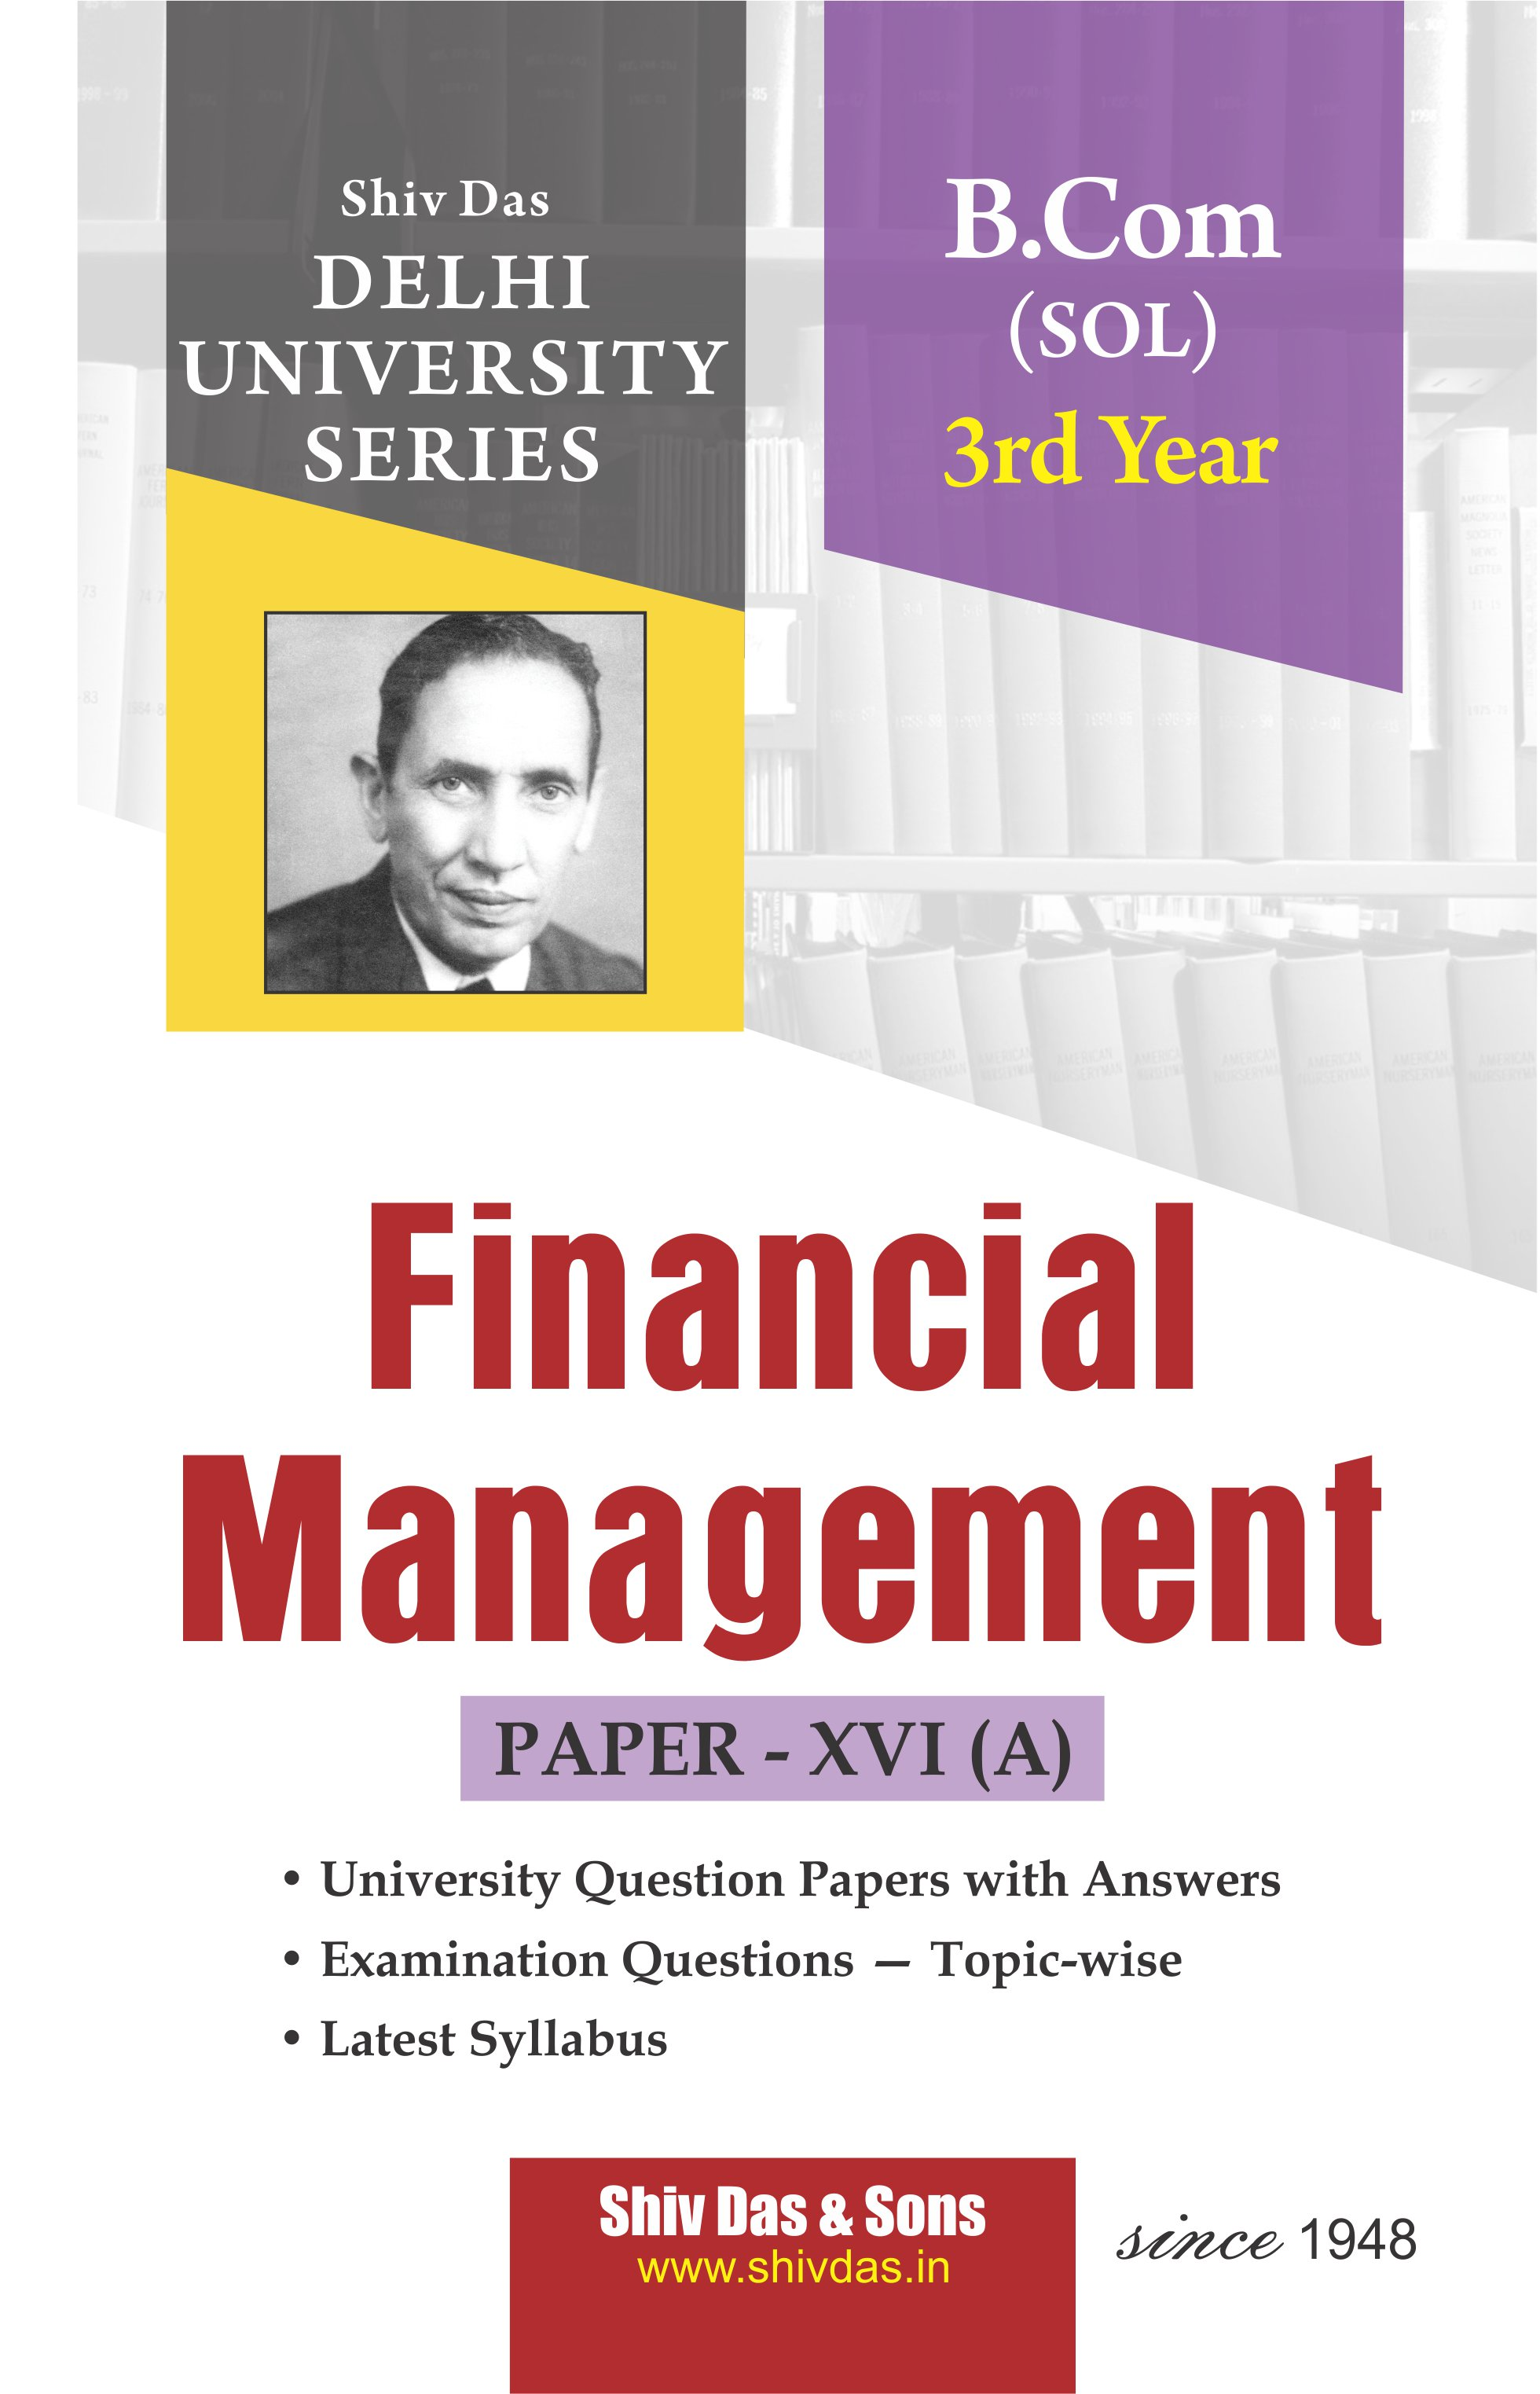 Financial Management (Eng. Medium) for B.Com 3rd Year SOL/External